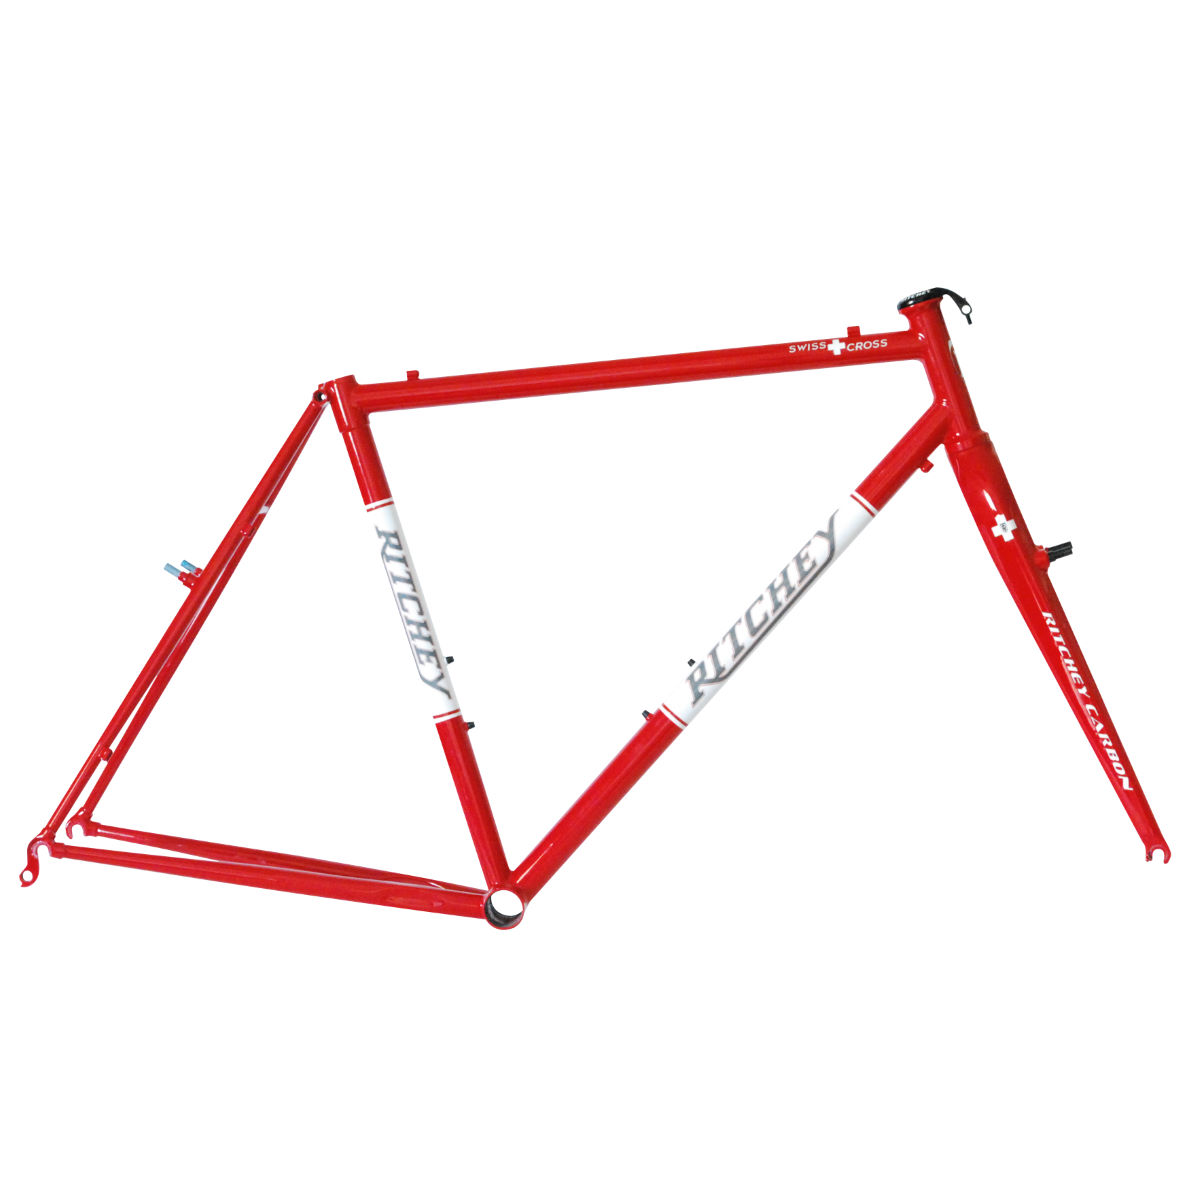 Ritchey Swiss Cross CX 2.0 Frameset   Cyclocross Frames